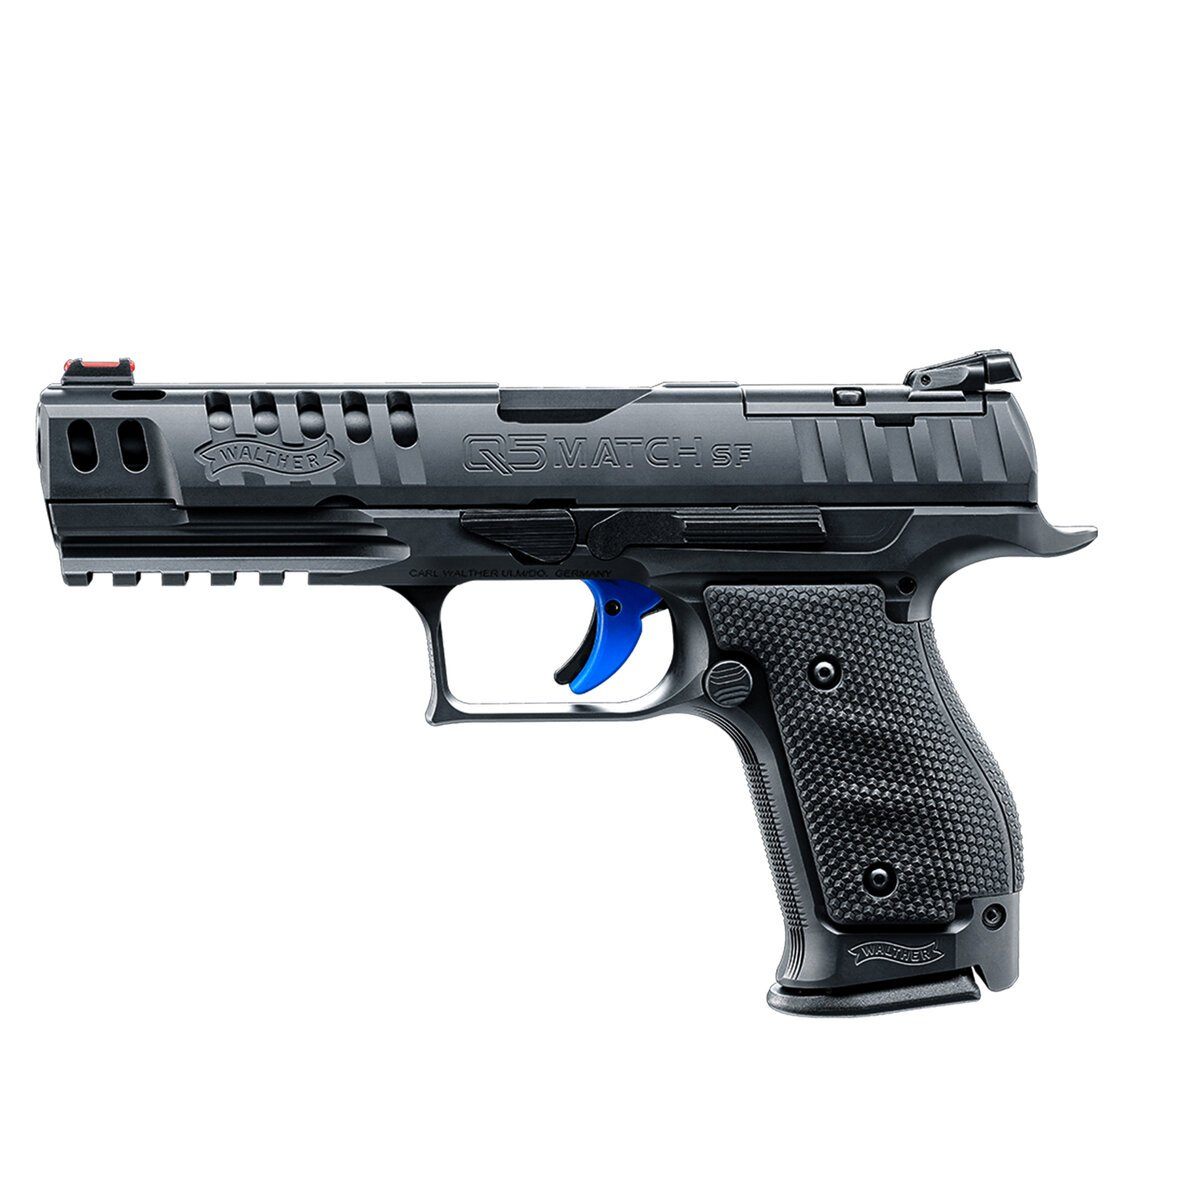 Walther Q5 Match Steel Frame, 9mm